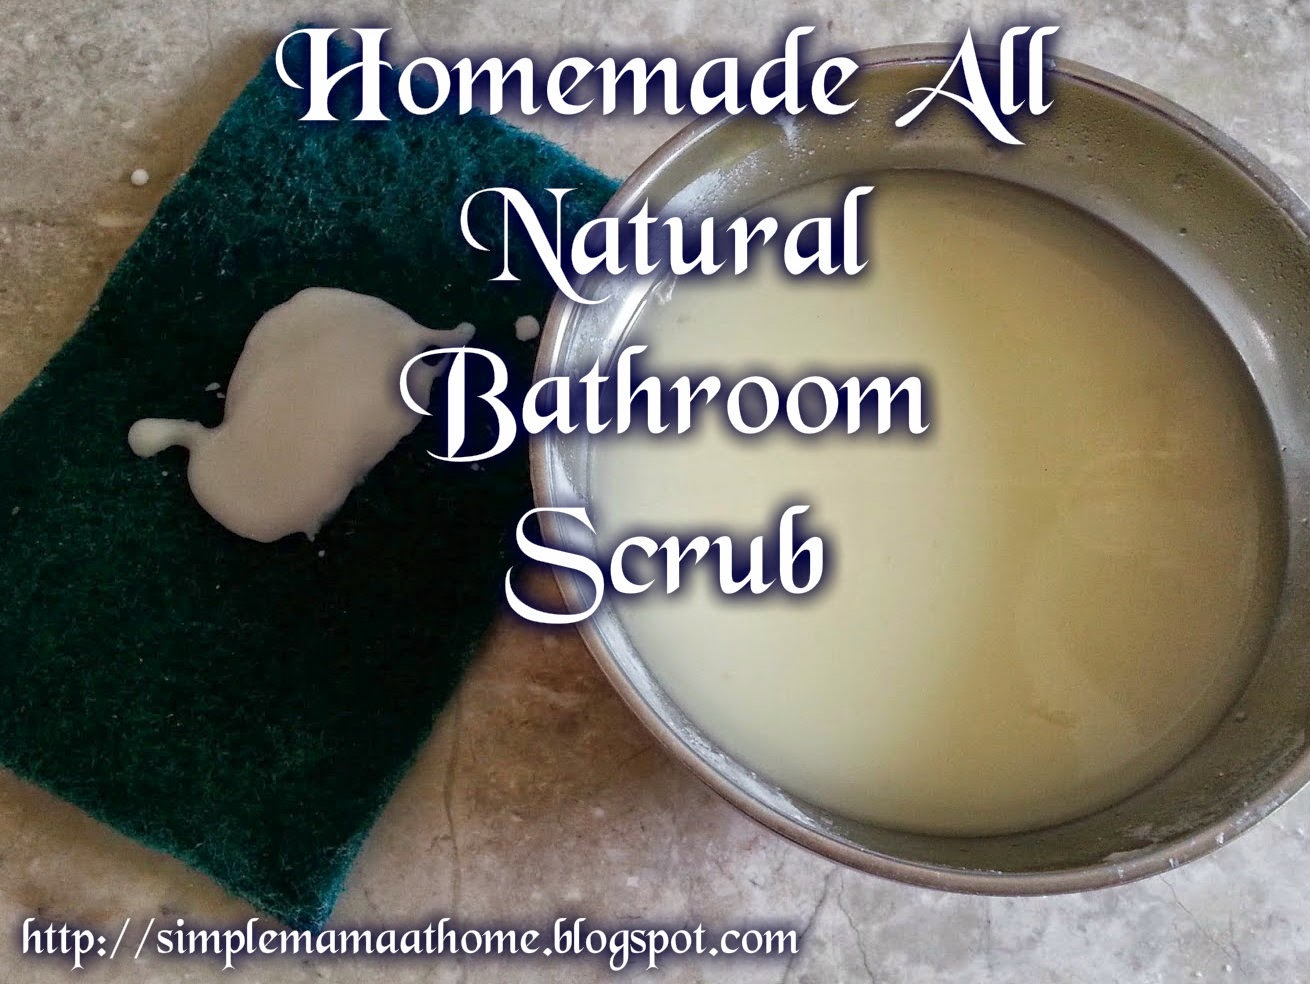 Homemade All Natural Bathroom Scrub